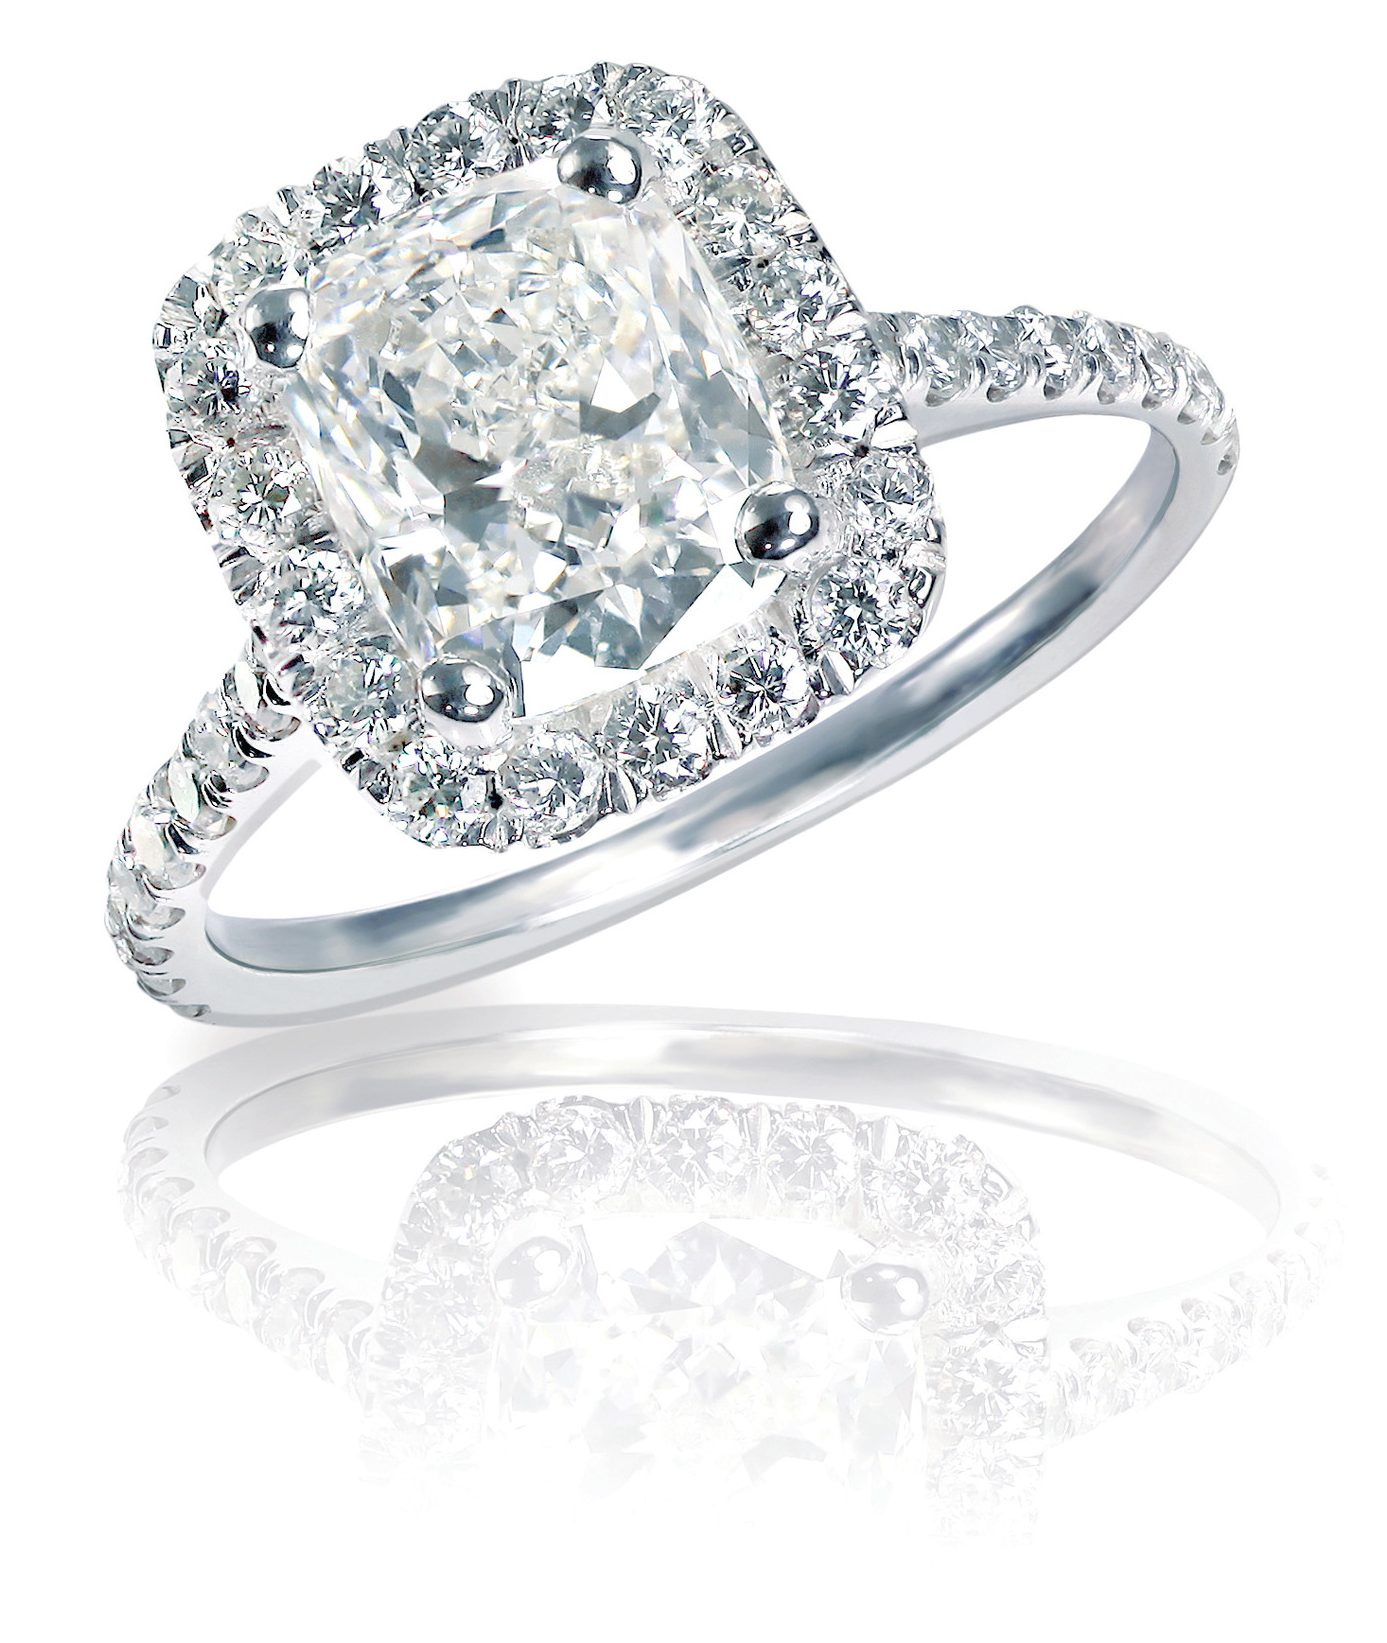 Large cushion cut, sapphire emerald cut, diamond surrounded by smaller diamonds on a modern halo setting.